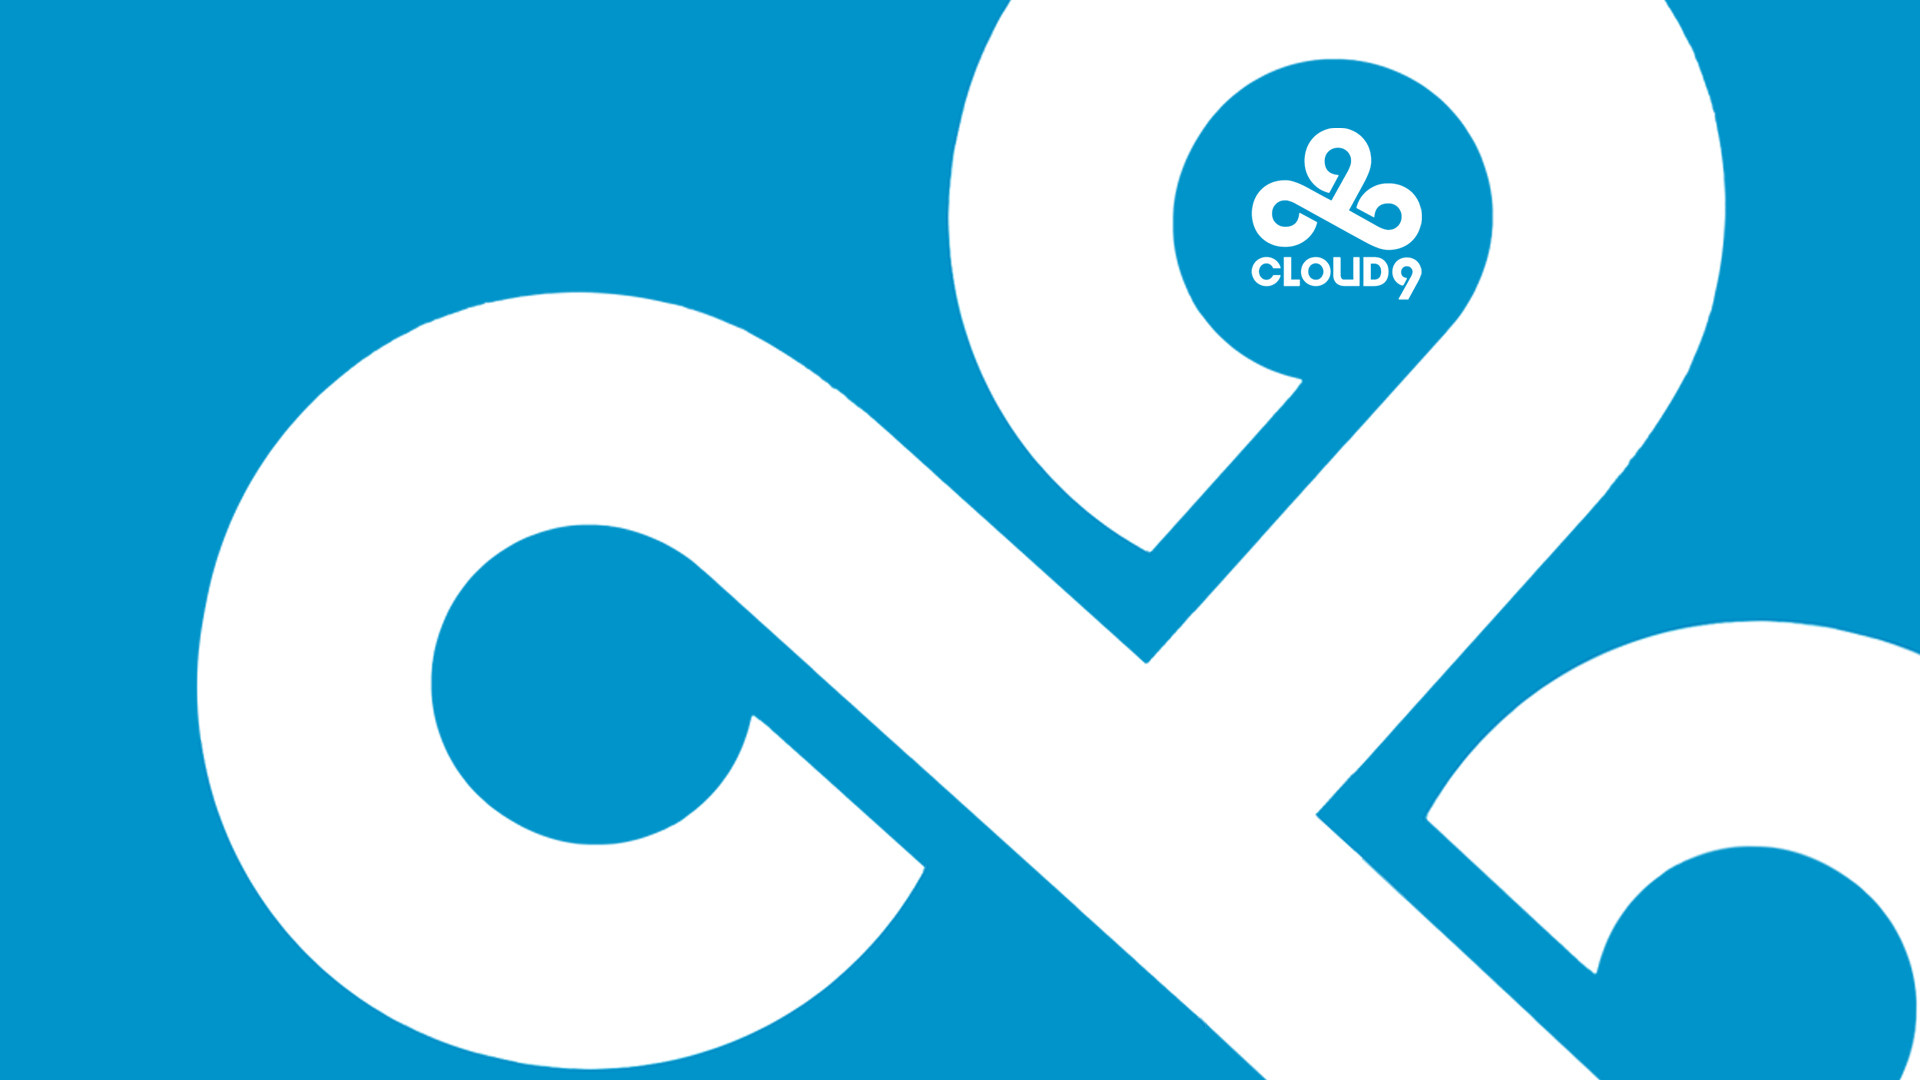 Simple Cloud9 Wallpaper based on the new jersey.